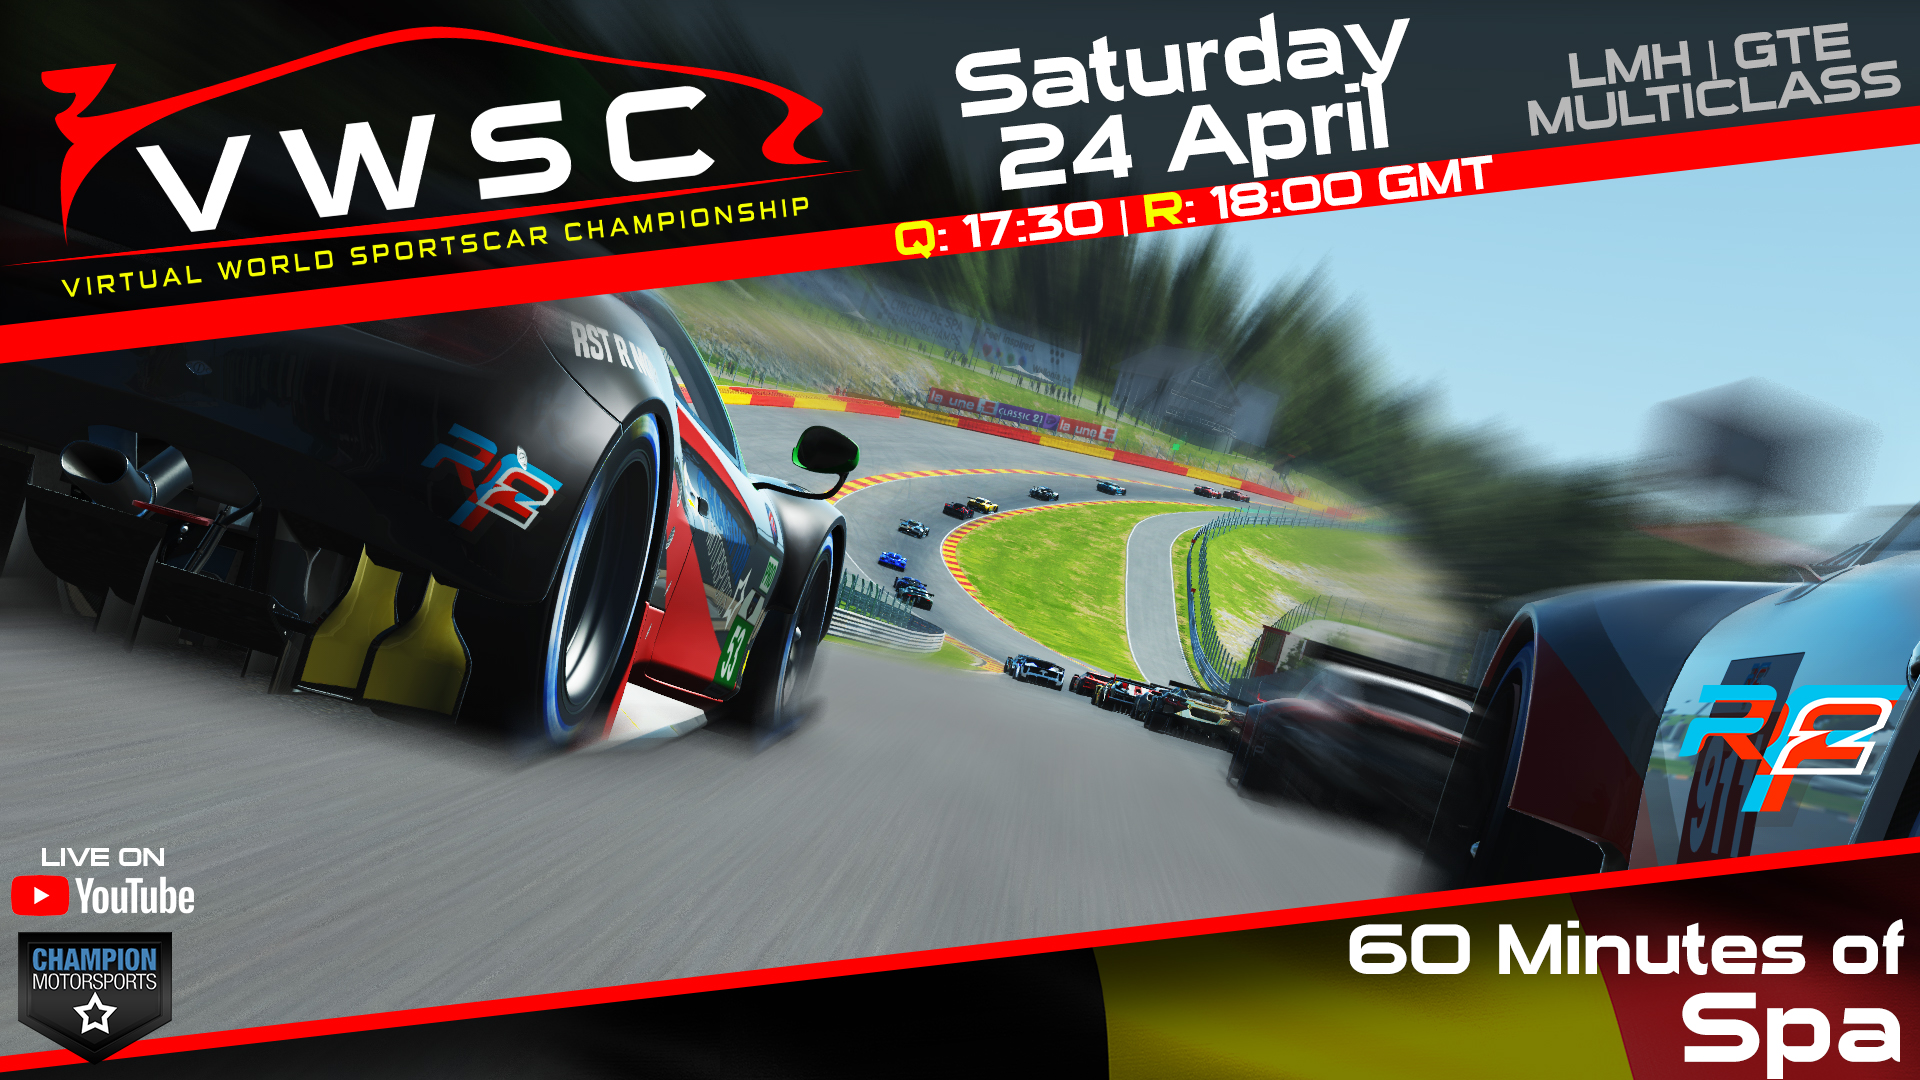 CMS World Sportscar Championship – 60 Minutes of Spa